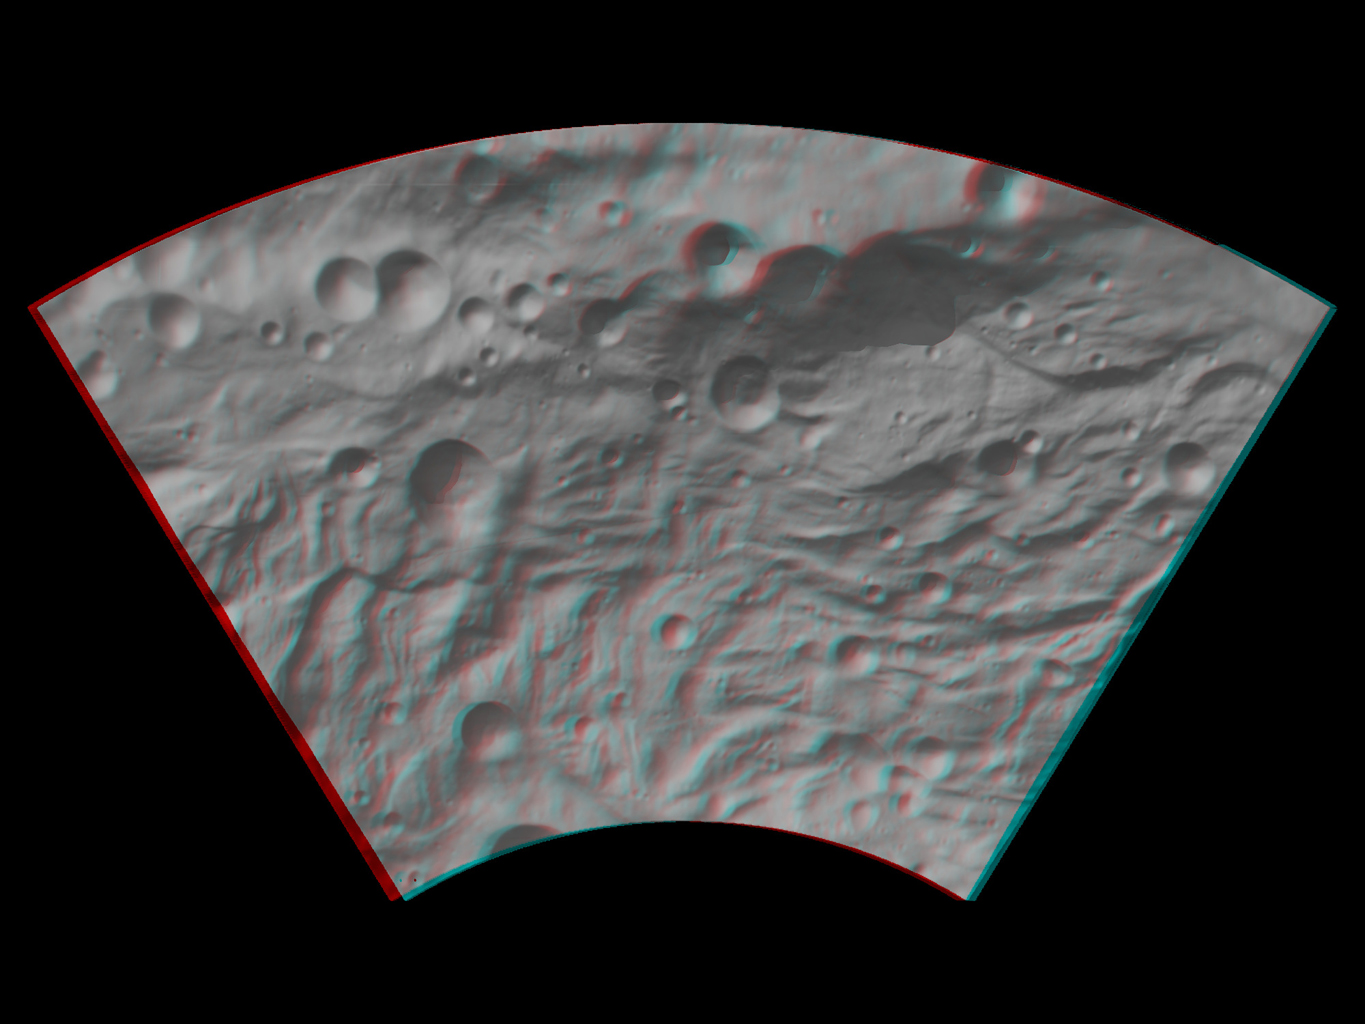 This anaglyph image shows the topography of asteroid Vesta's southwestern region. The large, heavily degraded subdued rimmed crater in the top right becomes clearer in this anaglyph image. You need 3-D glasses to view this image.